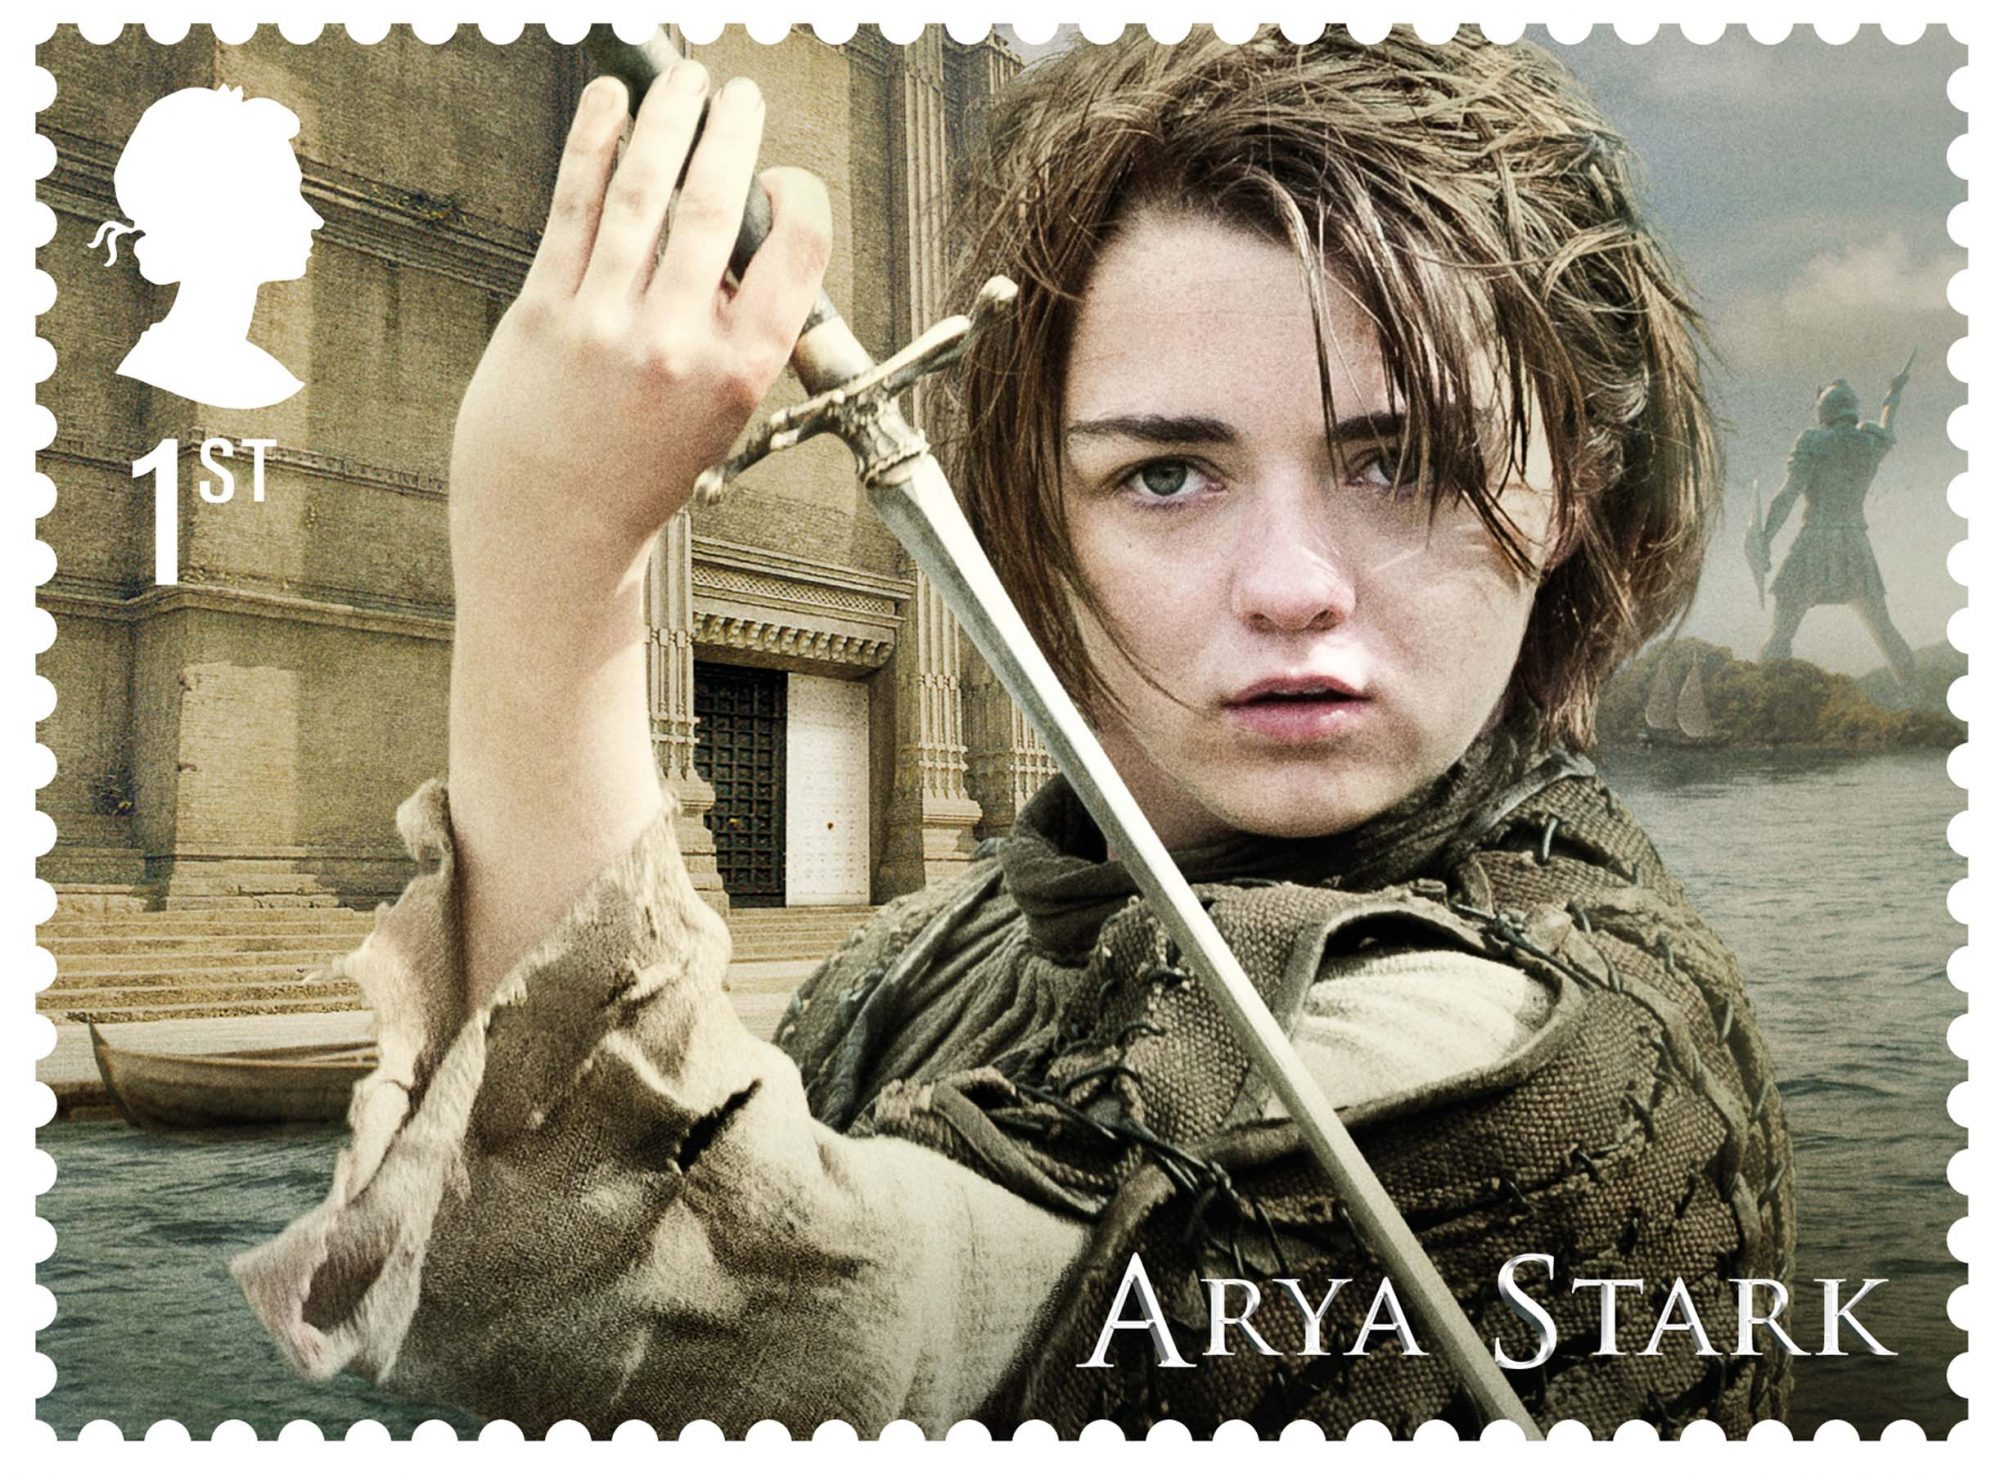 GoT Arya Stark stamp